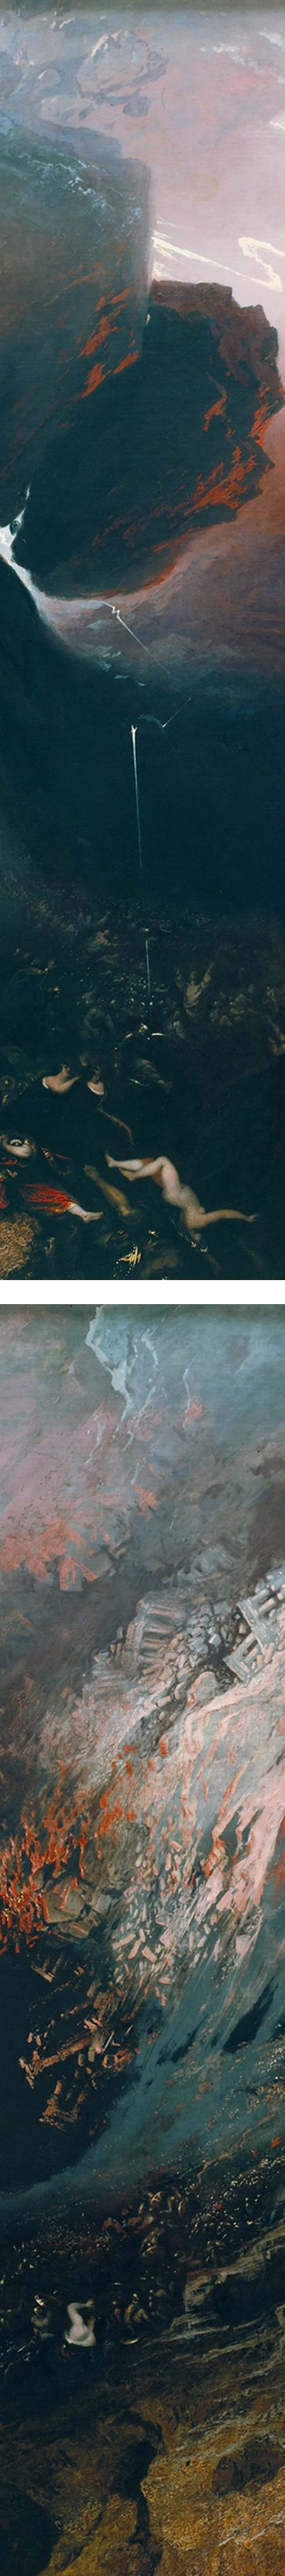 The Great Day of His Wrath, John Martin (details)